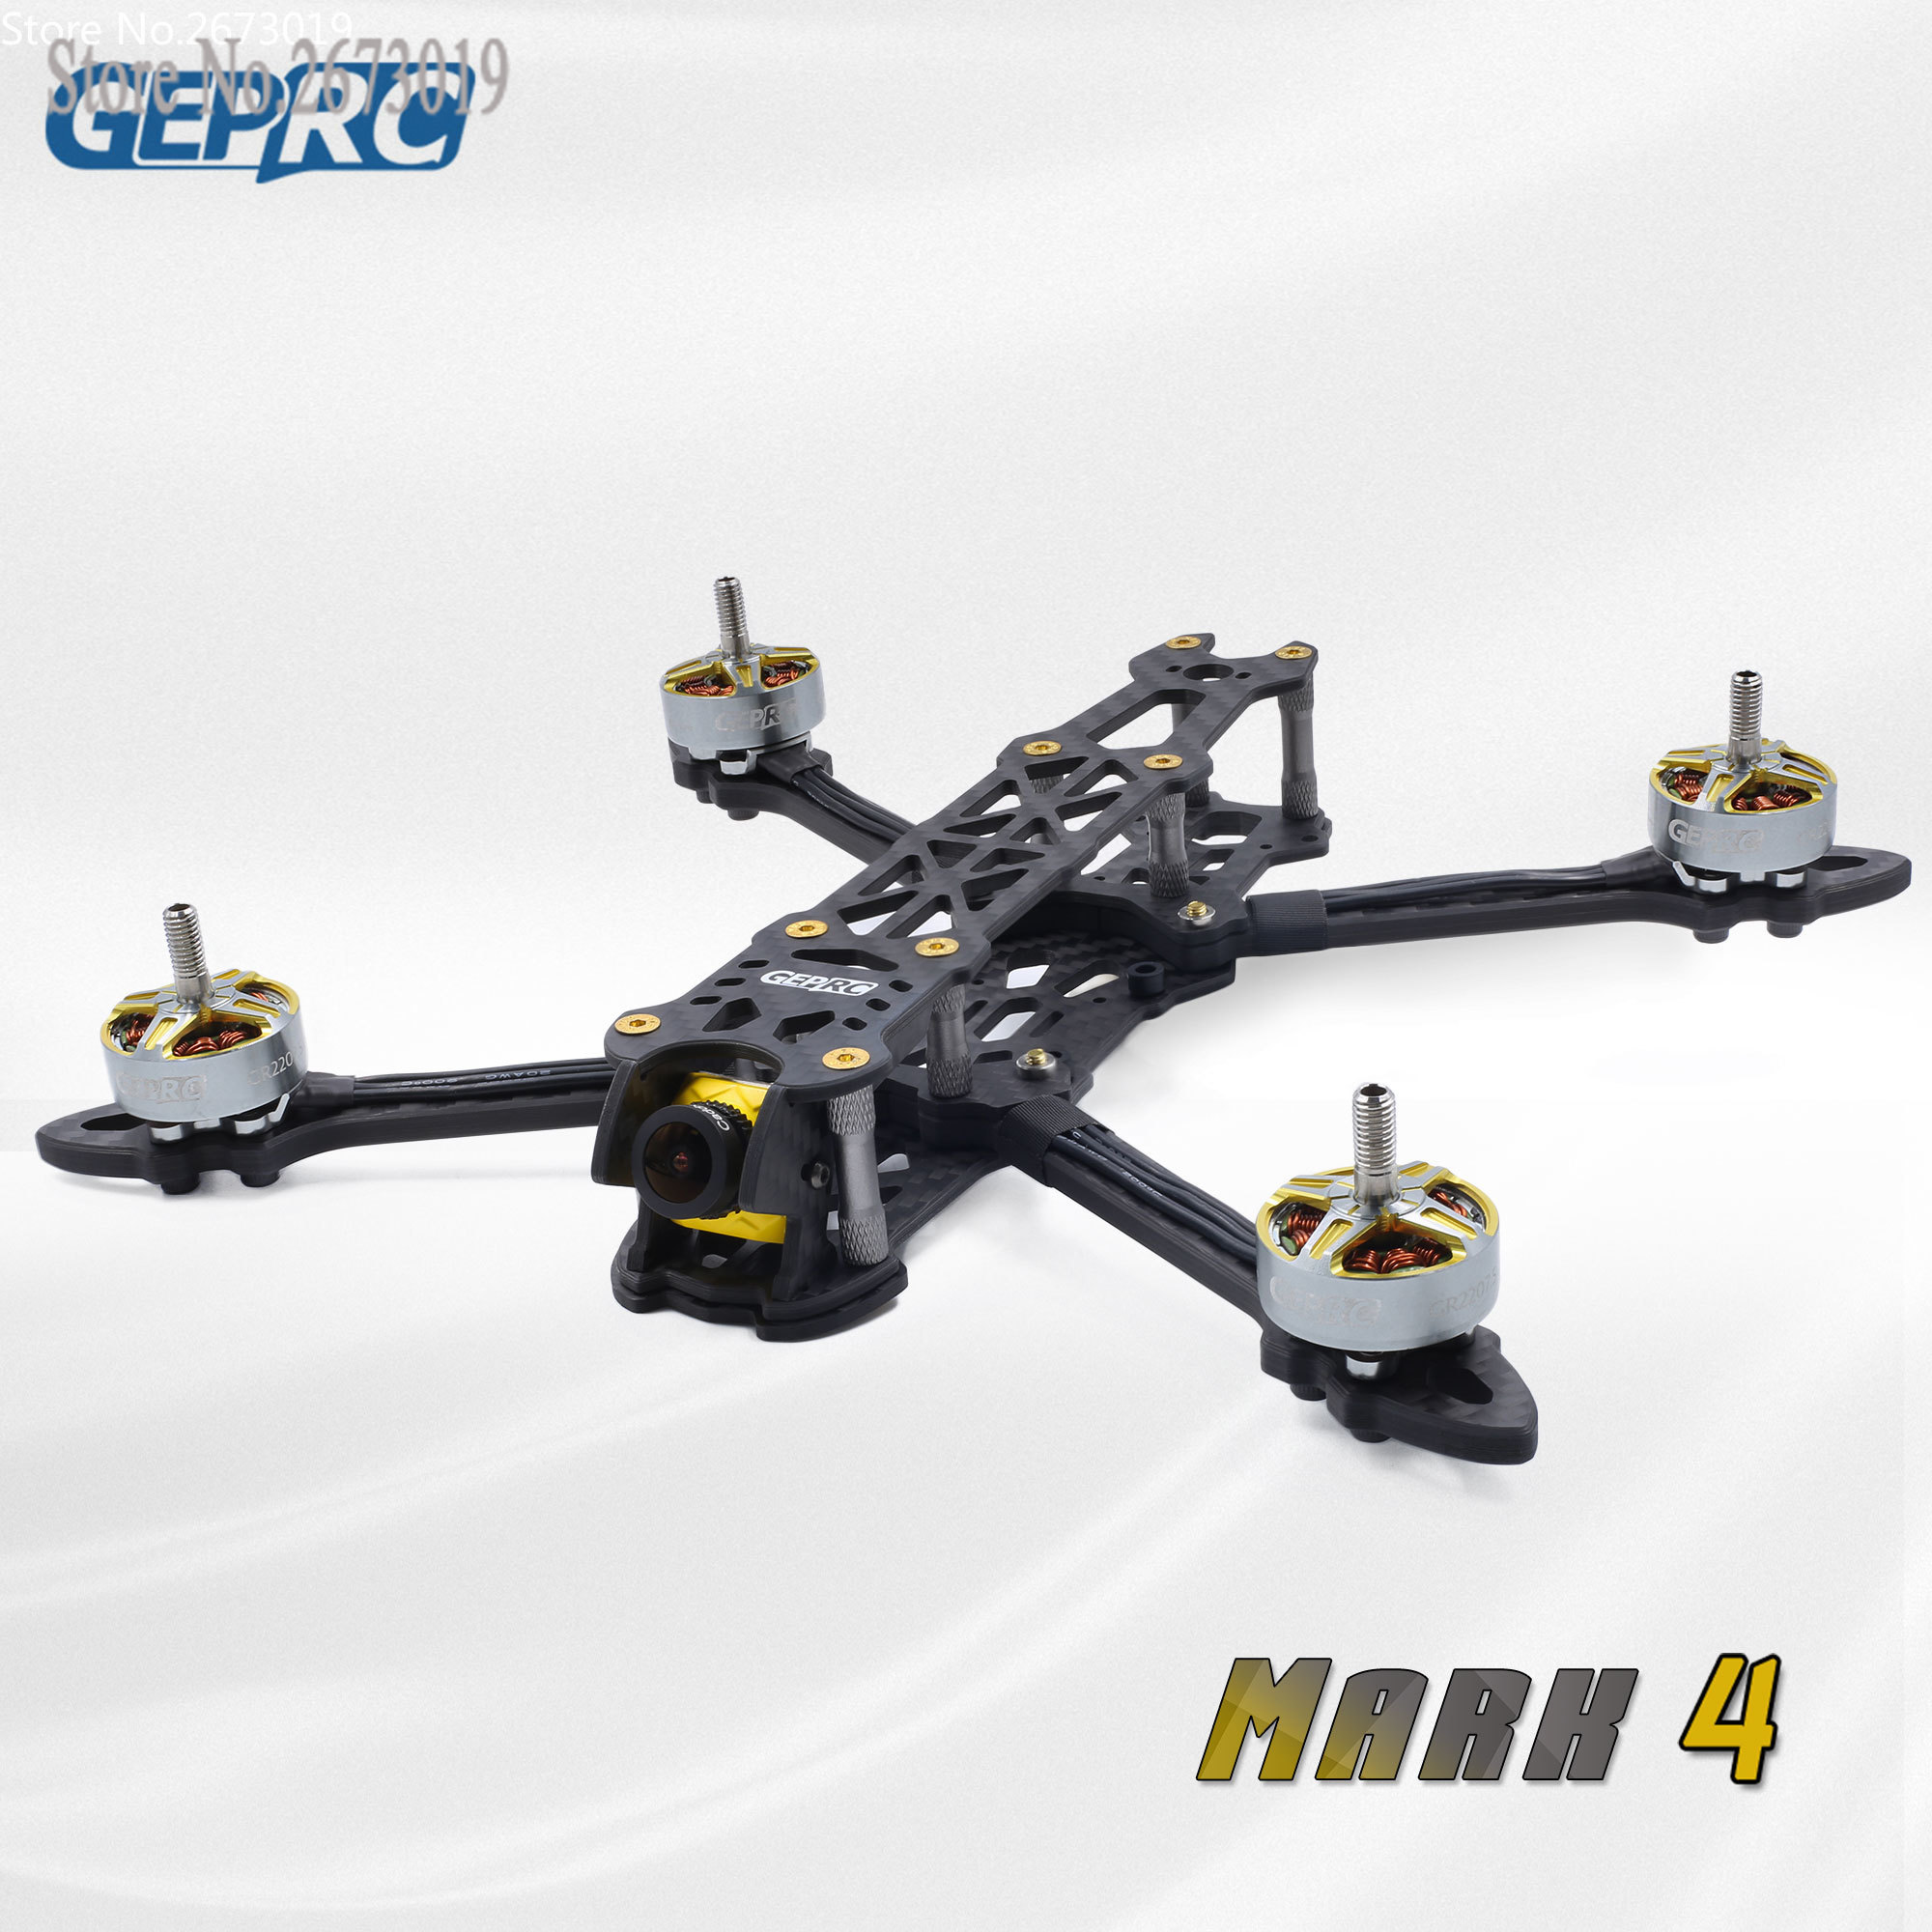 GEPRC Mark 4 FPV Racing Drone Frame Kit 5''/6''/7'' Qudcopter Frame 5mm Arm with 30.5*30.5/20*20mm mounting holes for FC-in Parts & Accessories from Toys & Hobbies    1